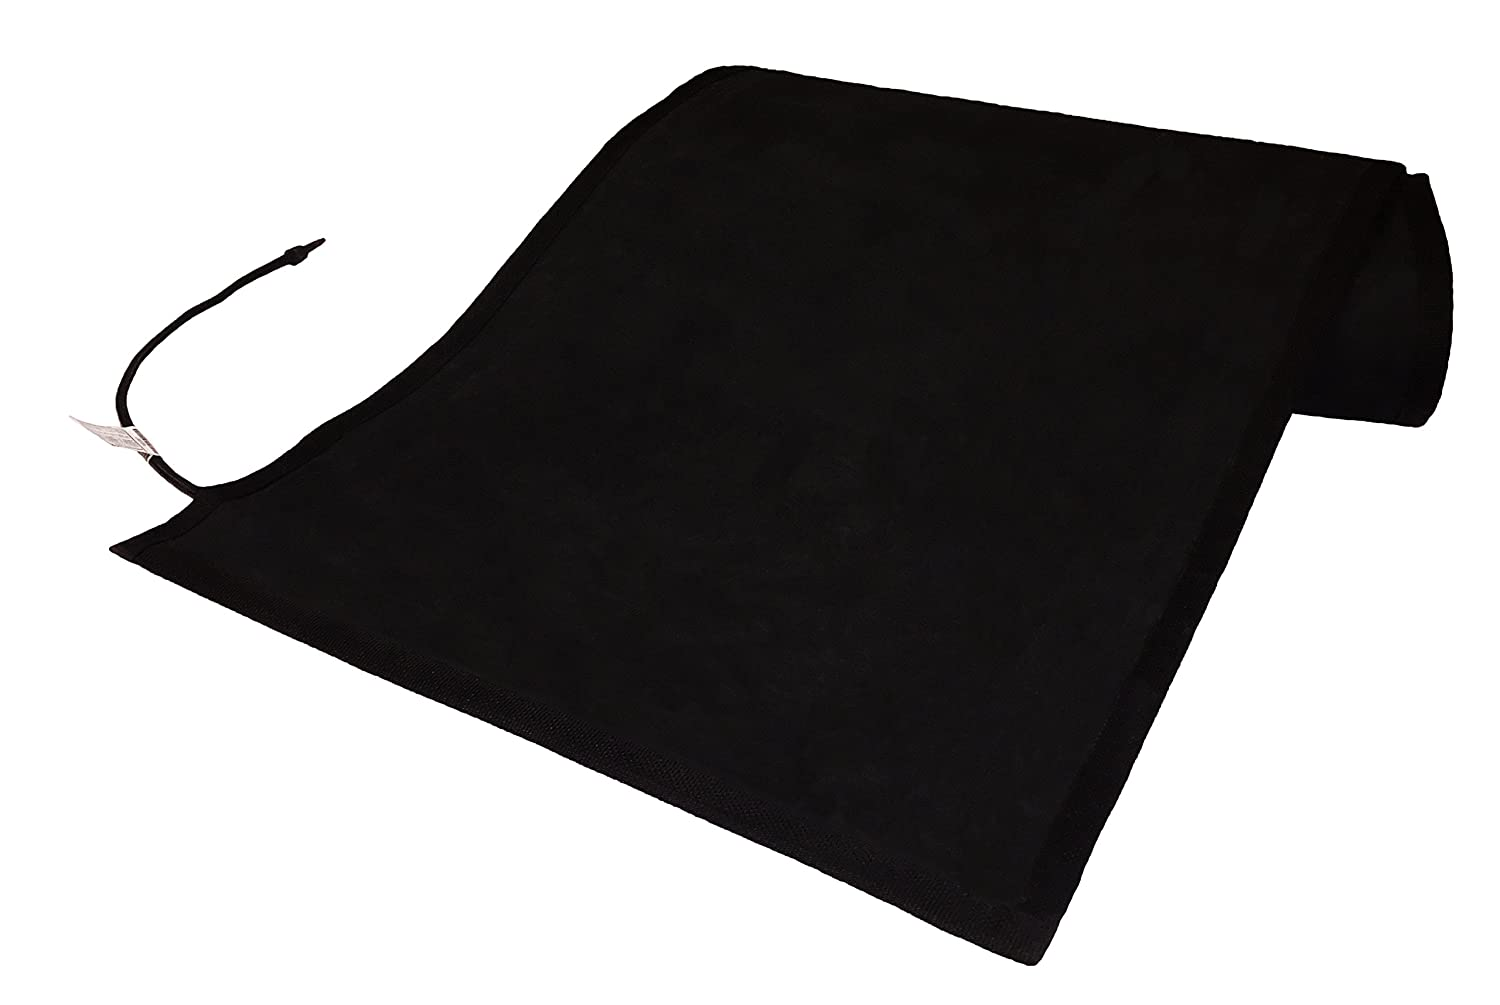 310 Watts Keep your path safe and clear this snowy winter season 5ft Length 120V Anti-Slip Summerstep Home WM24x60C-RES Residential Snow Melting Heated Walkway Mat 2ft Wide